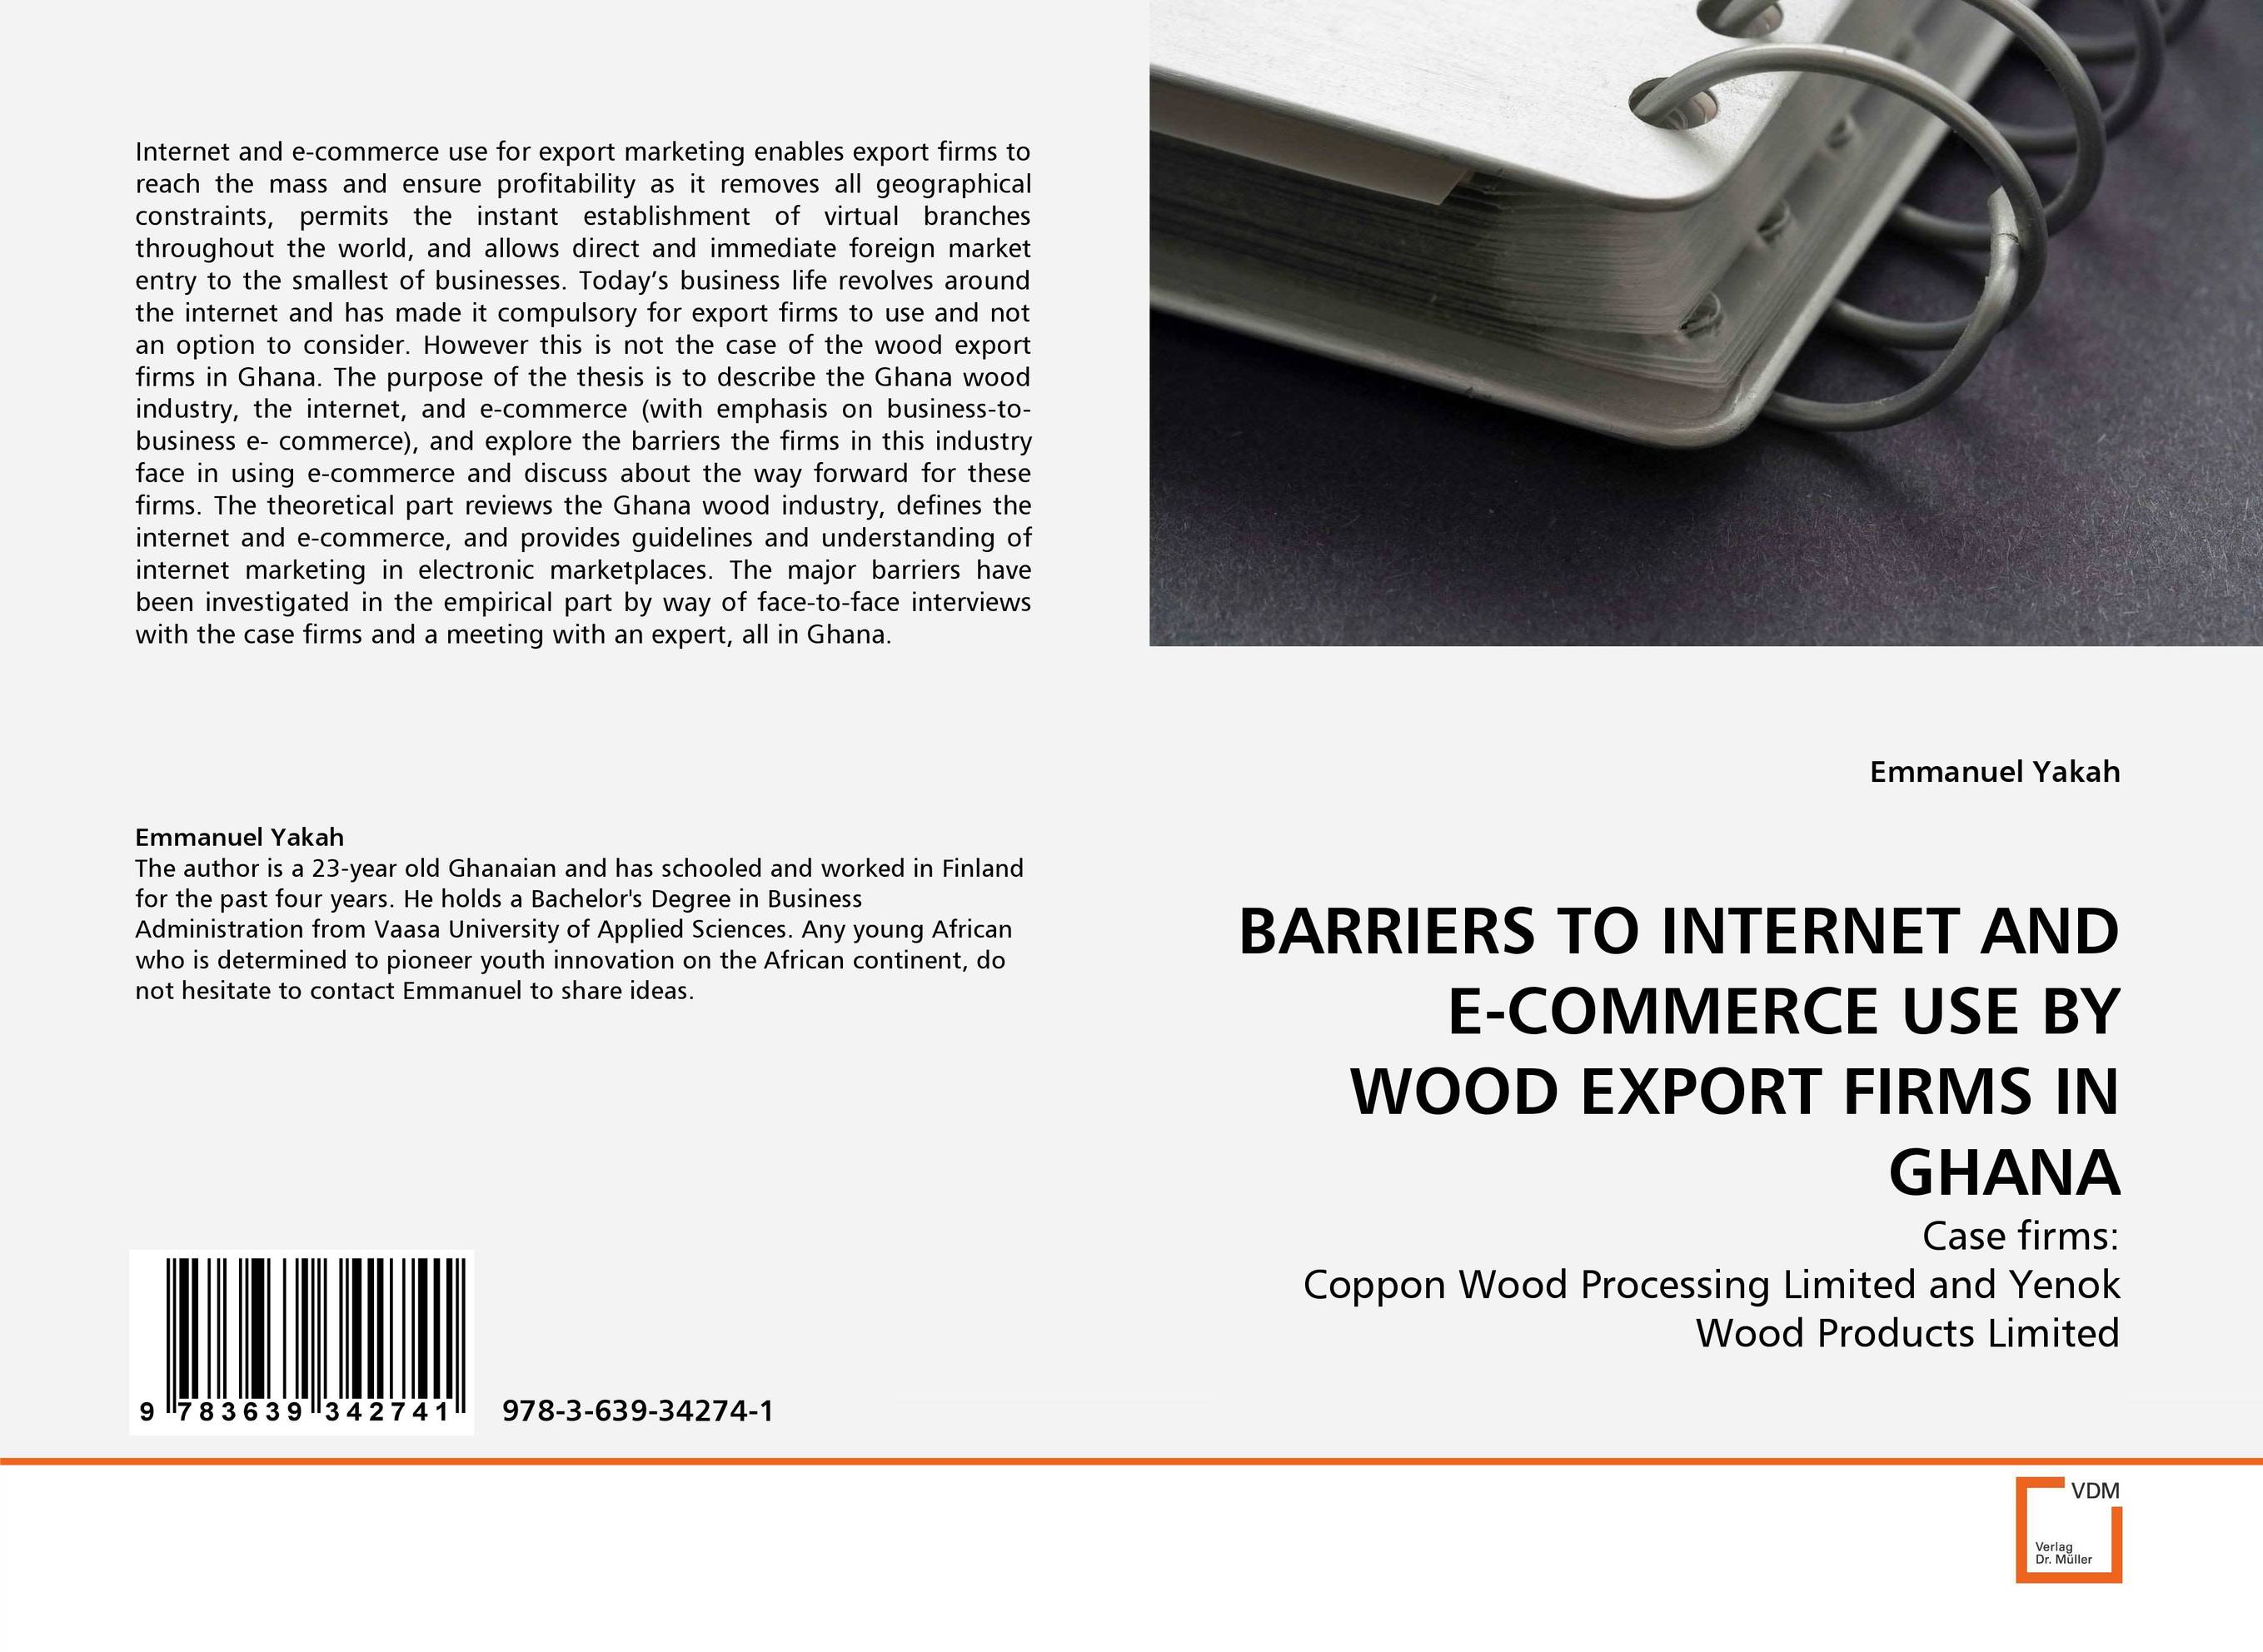 BARRIERS TO INTERNET AND E-COMMERCE USE BY WOOD EXPORT FIRMS IN GHANA e commerce for african immigrant entrepreneurs